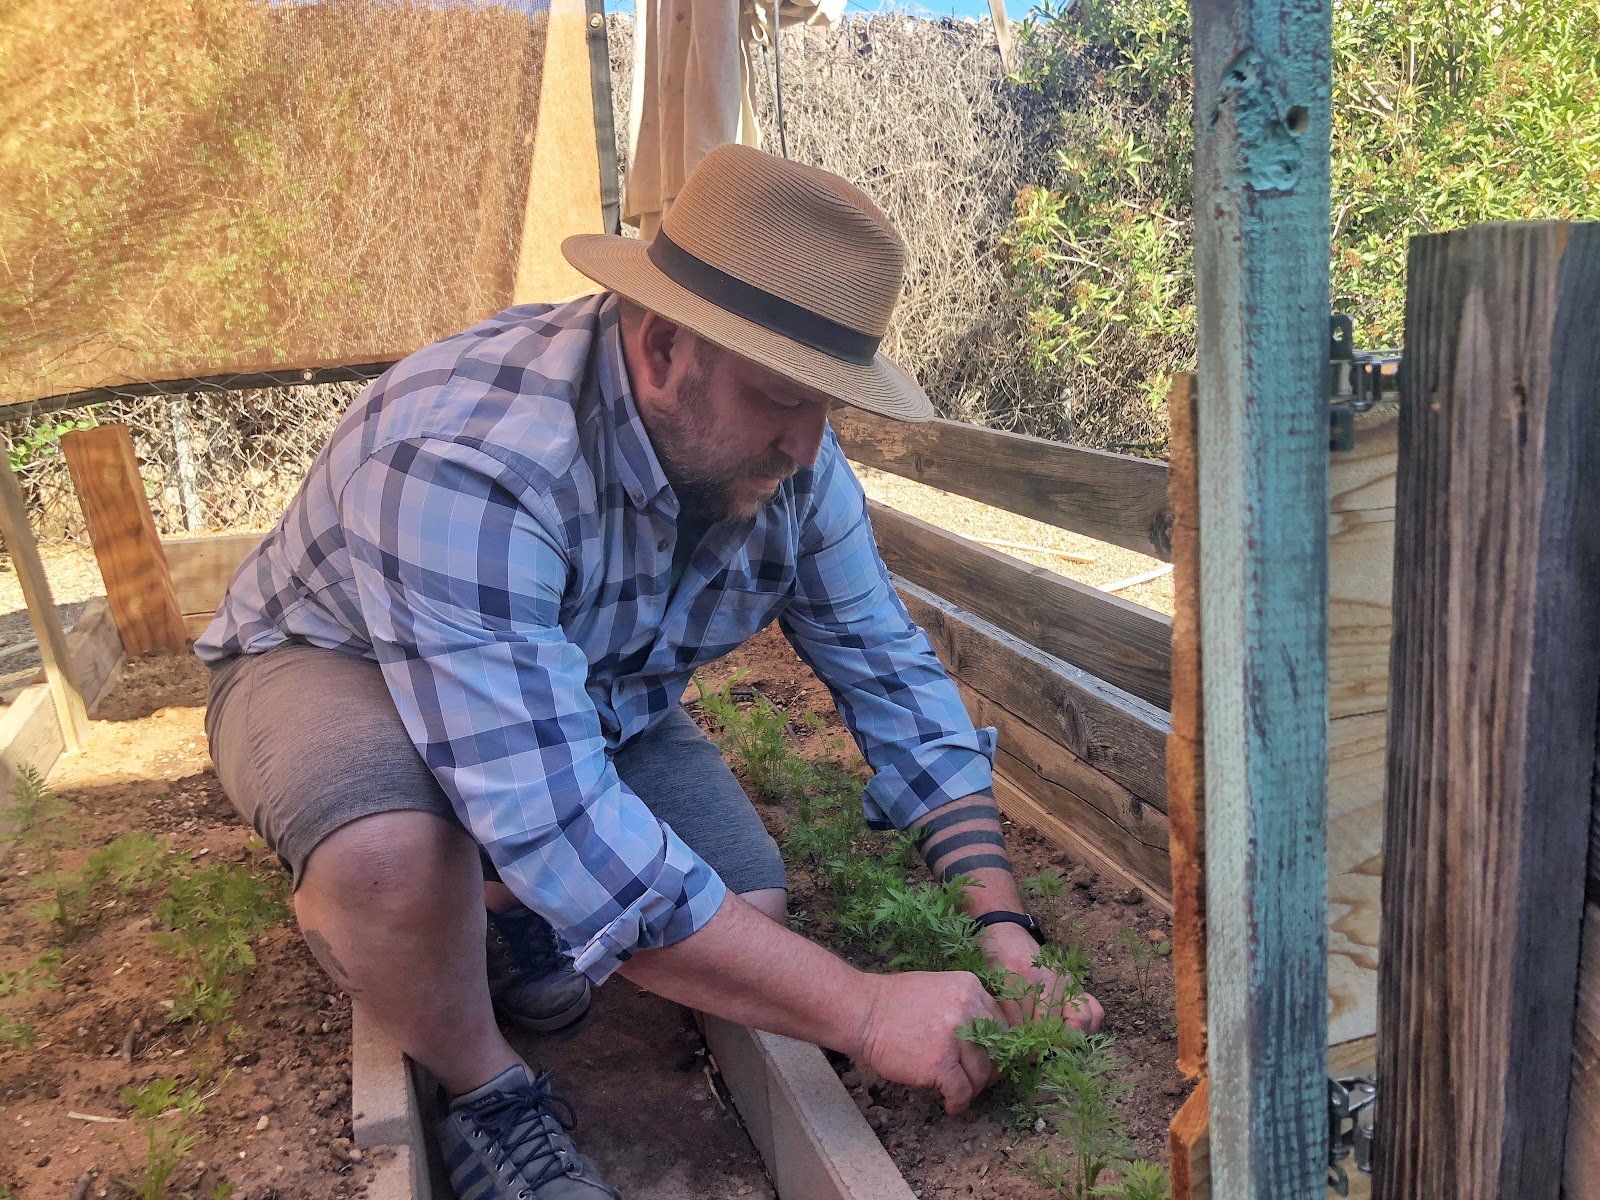 Team 1SE content creator Bruce Seaton thins carrots in his backyard vegetable garden in Albuquerque.